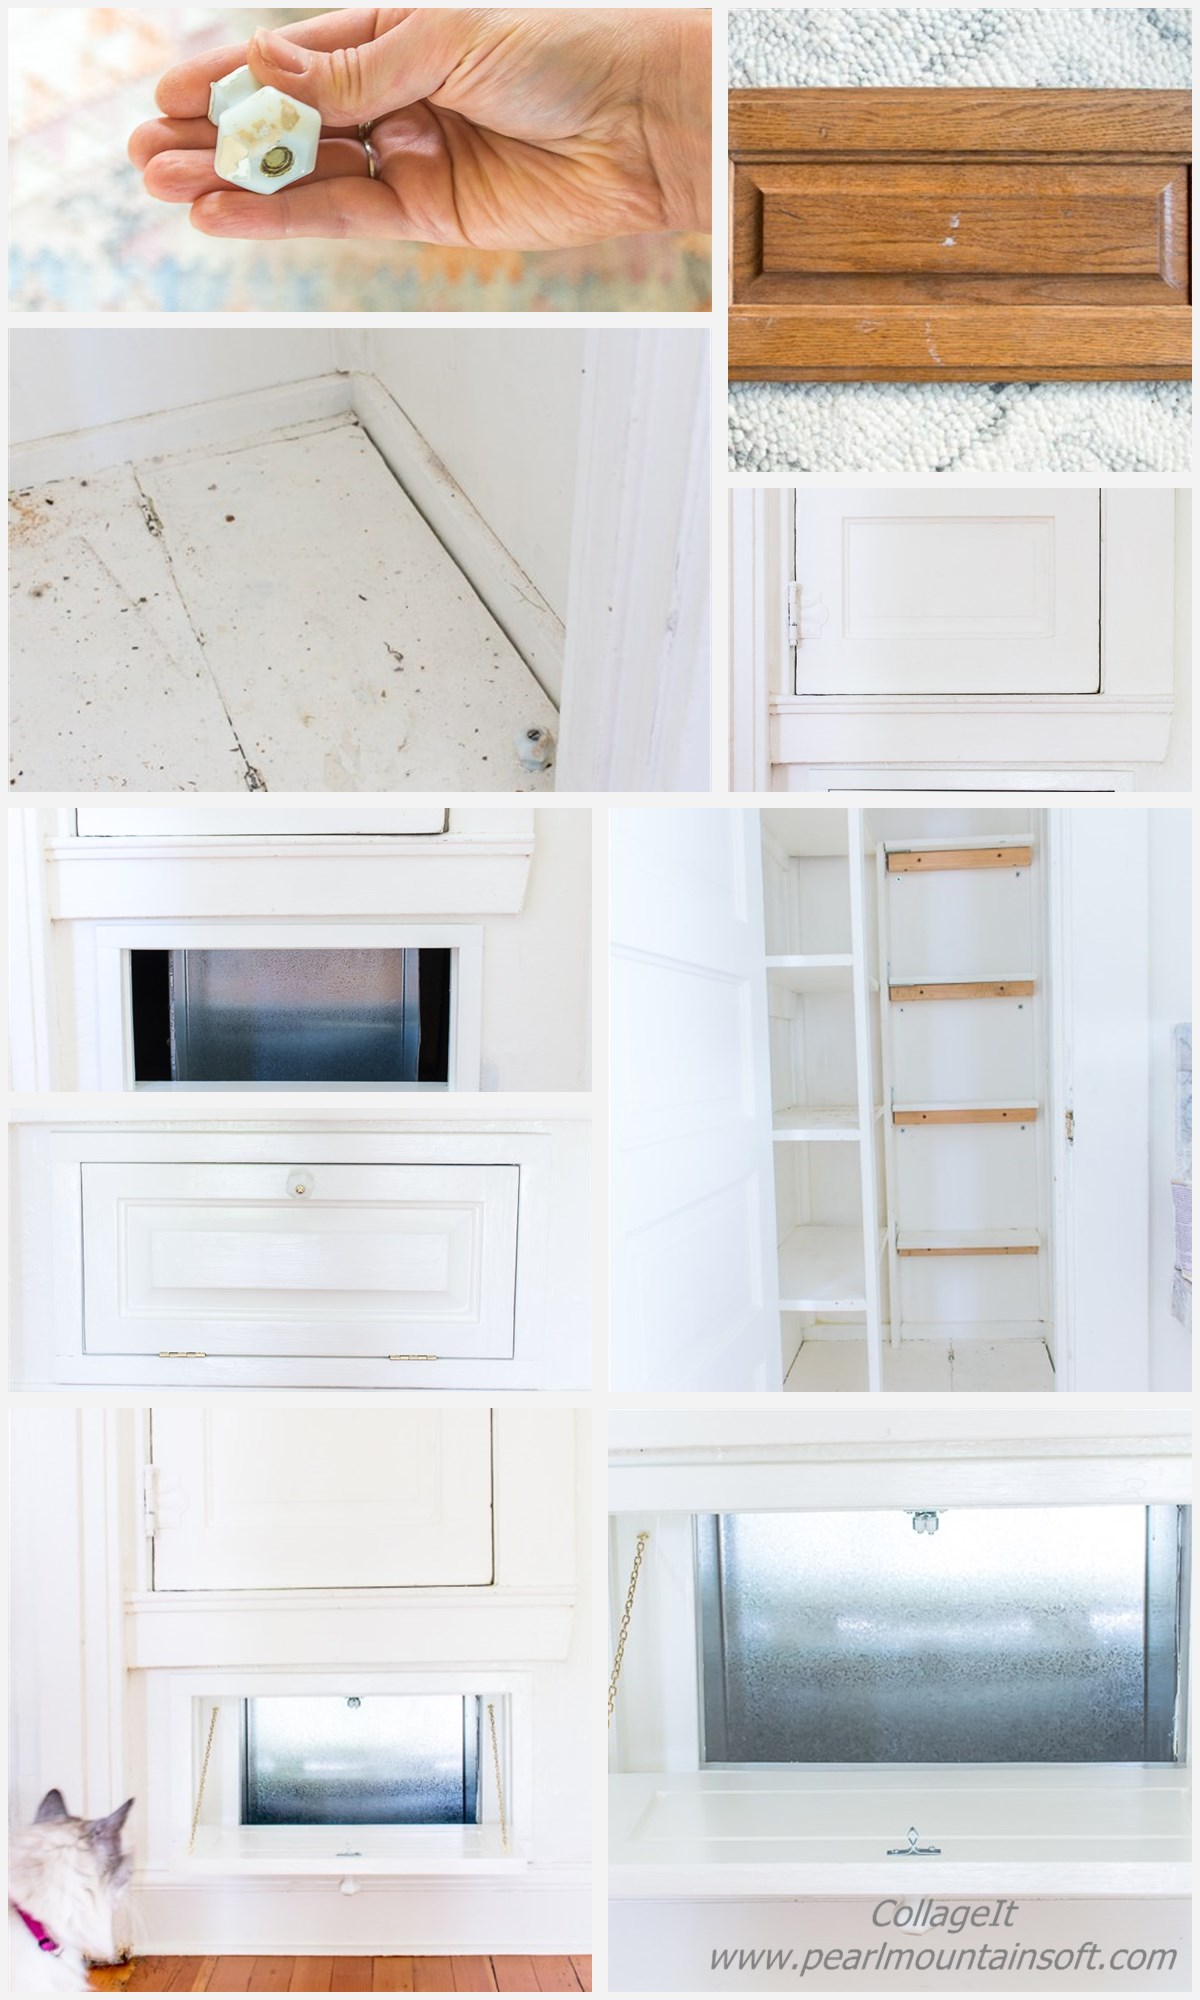 How to make a Vintage Laundry Chute